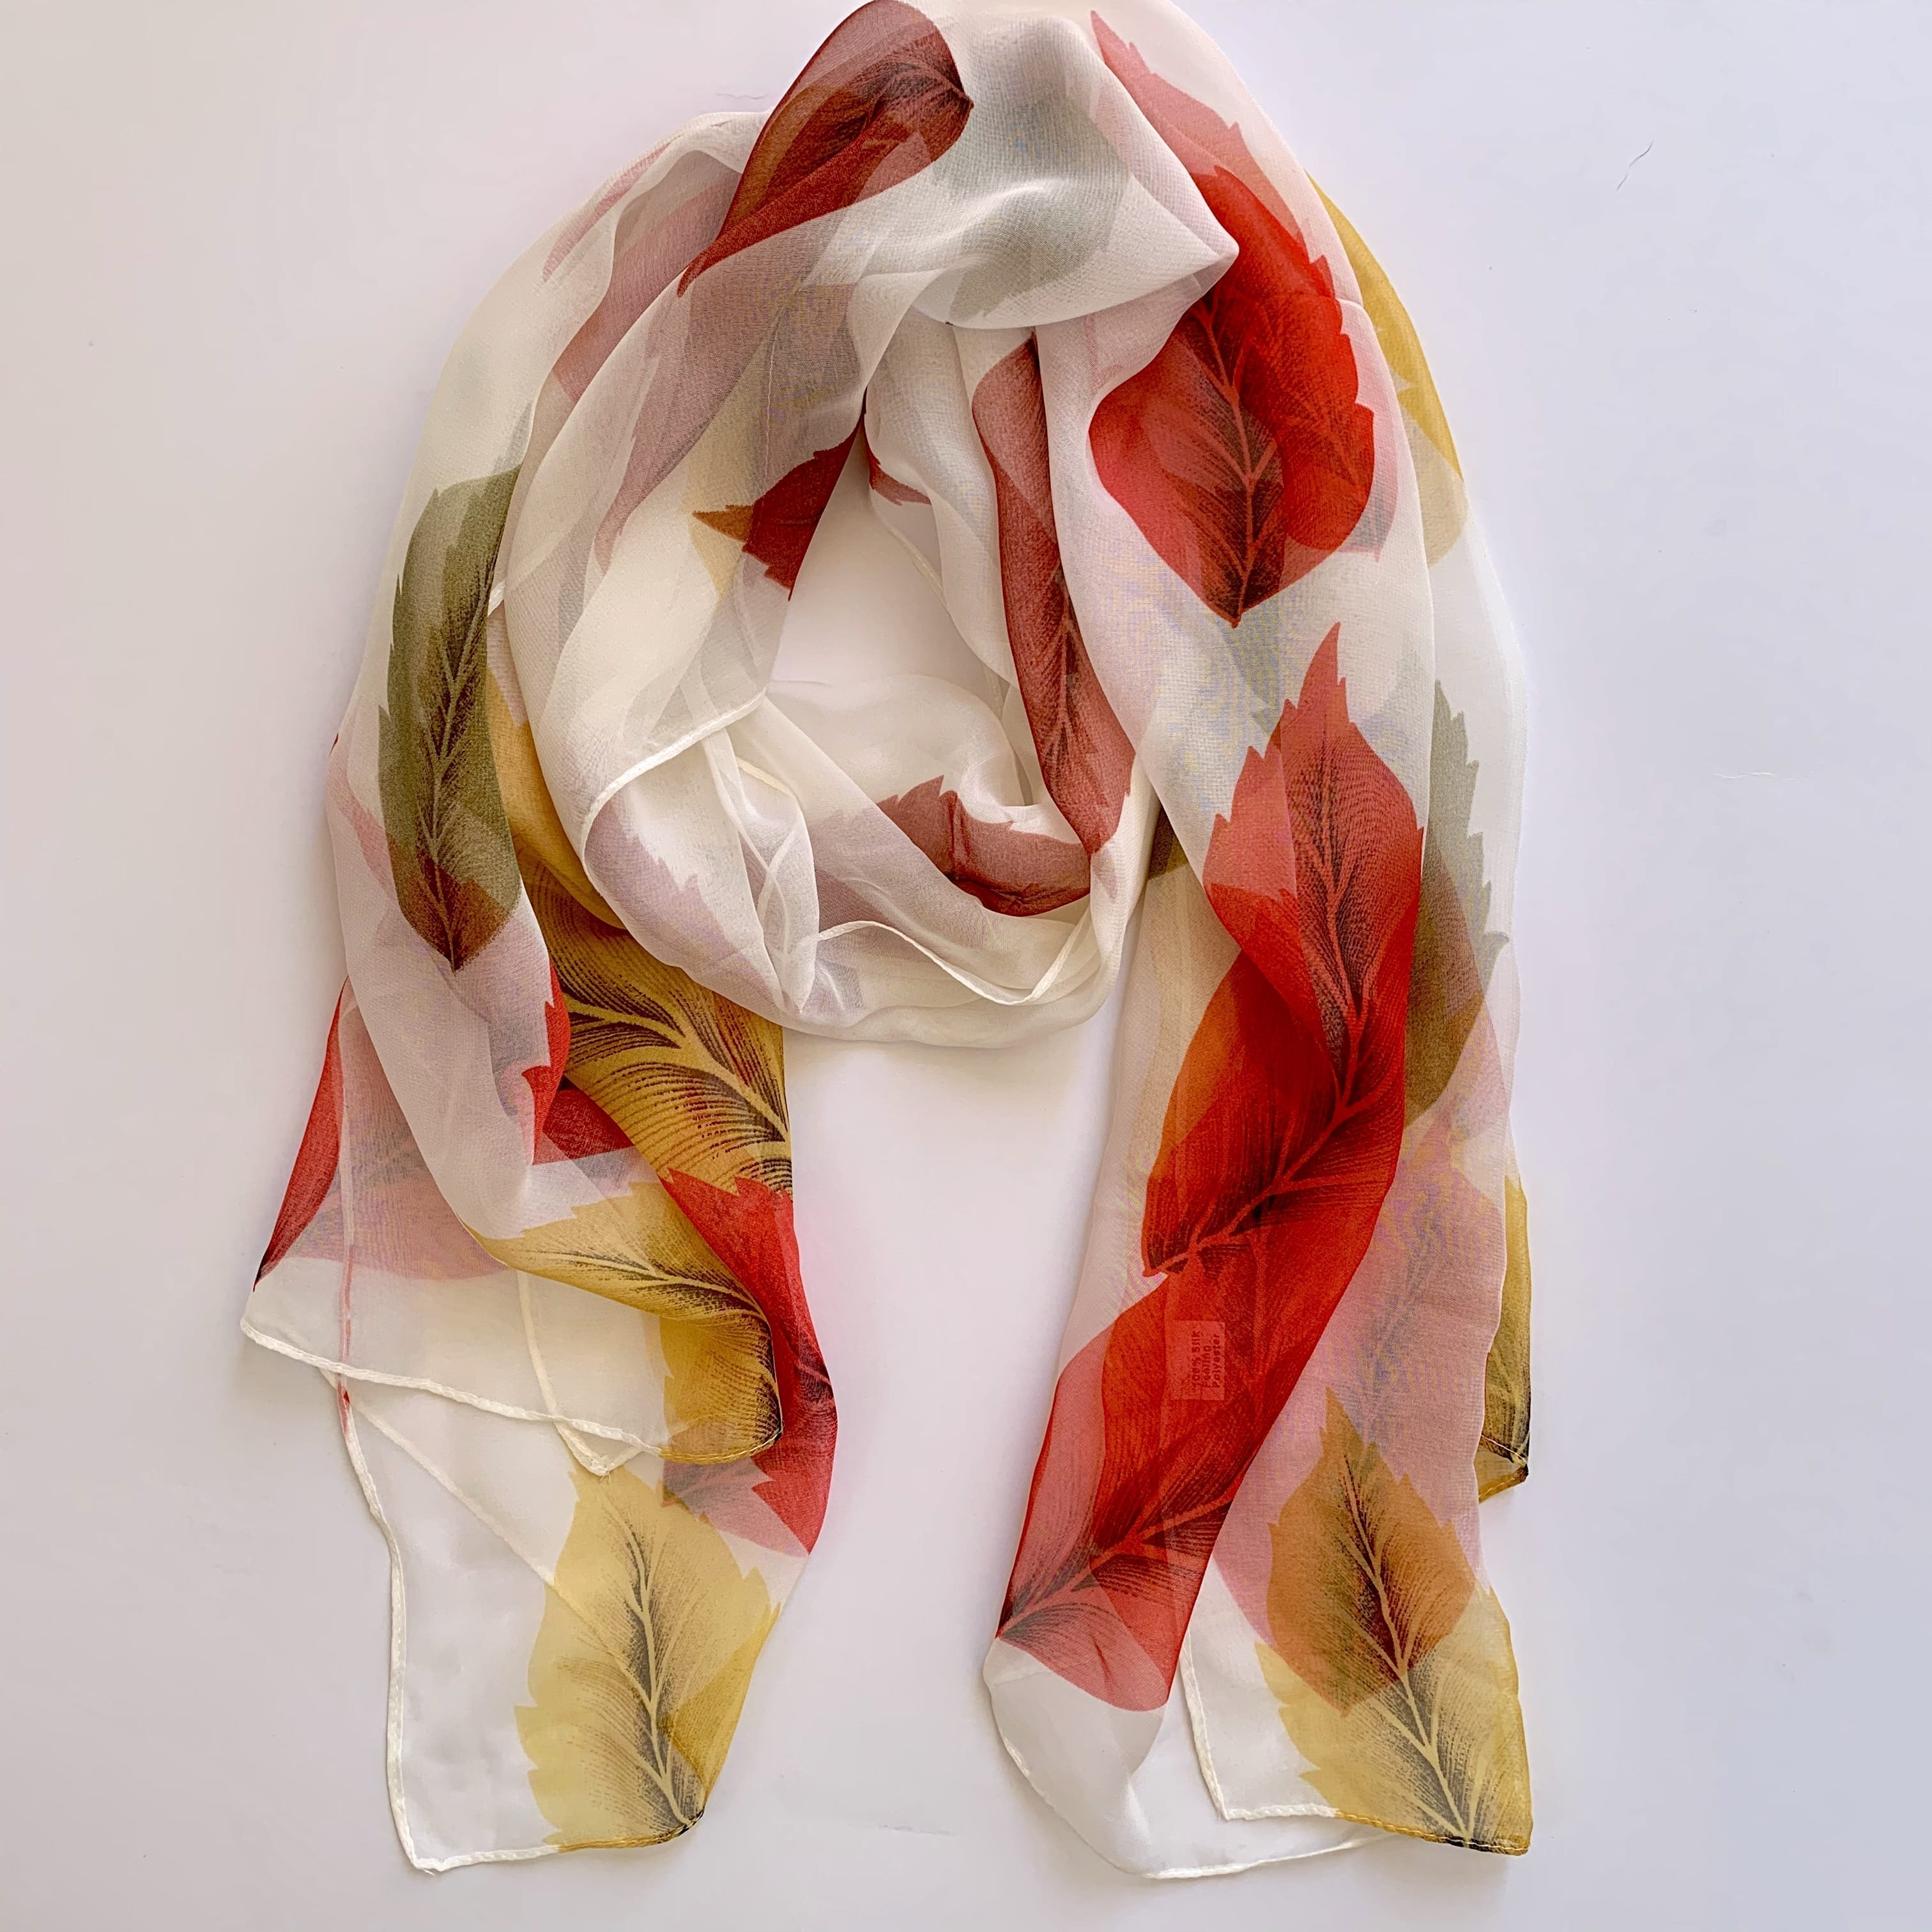 Matching head scarf - Autumn leaves